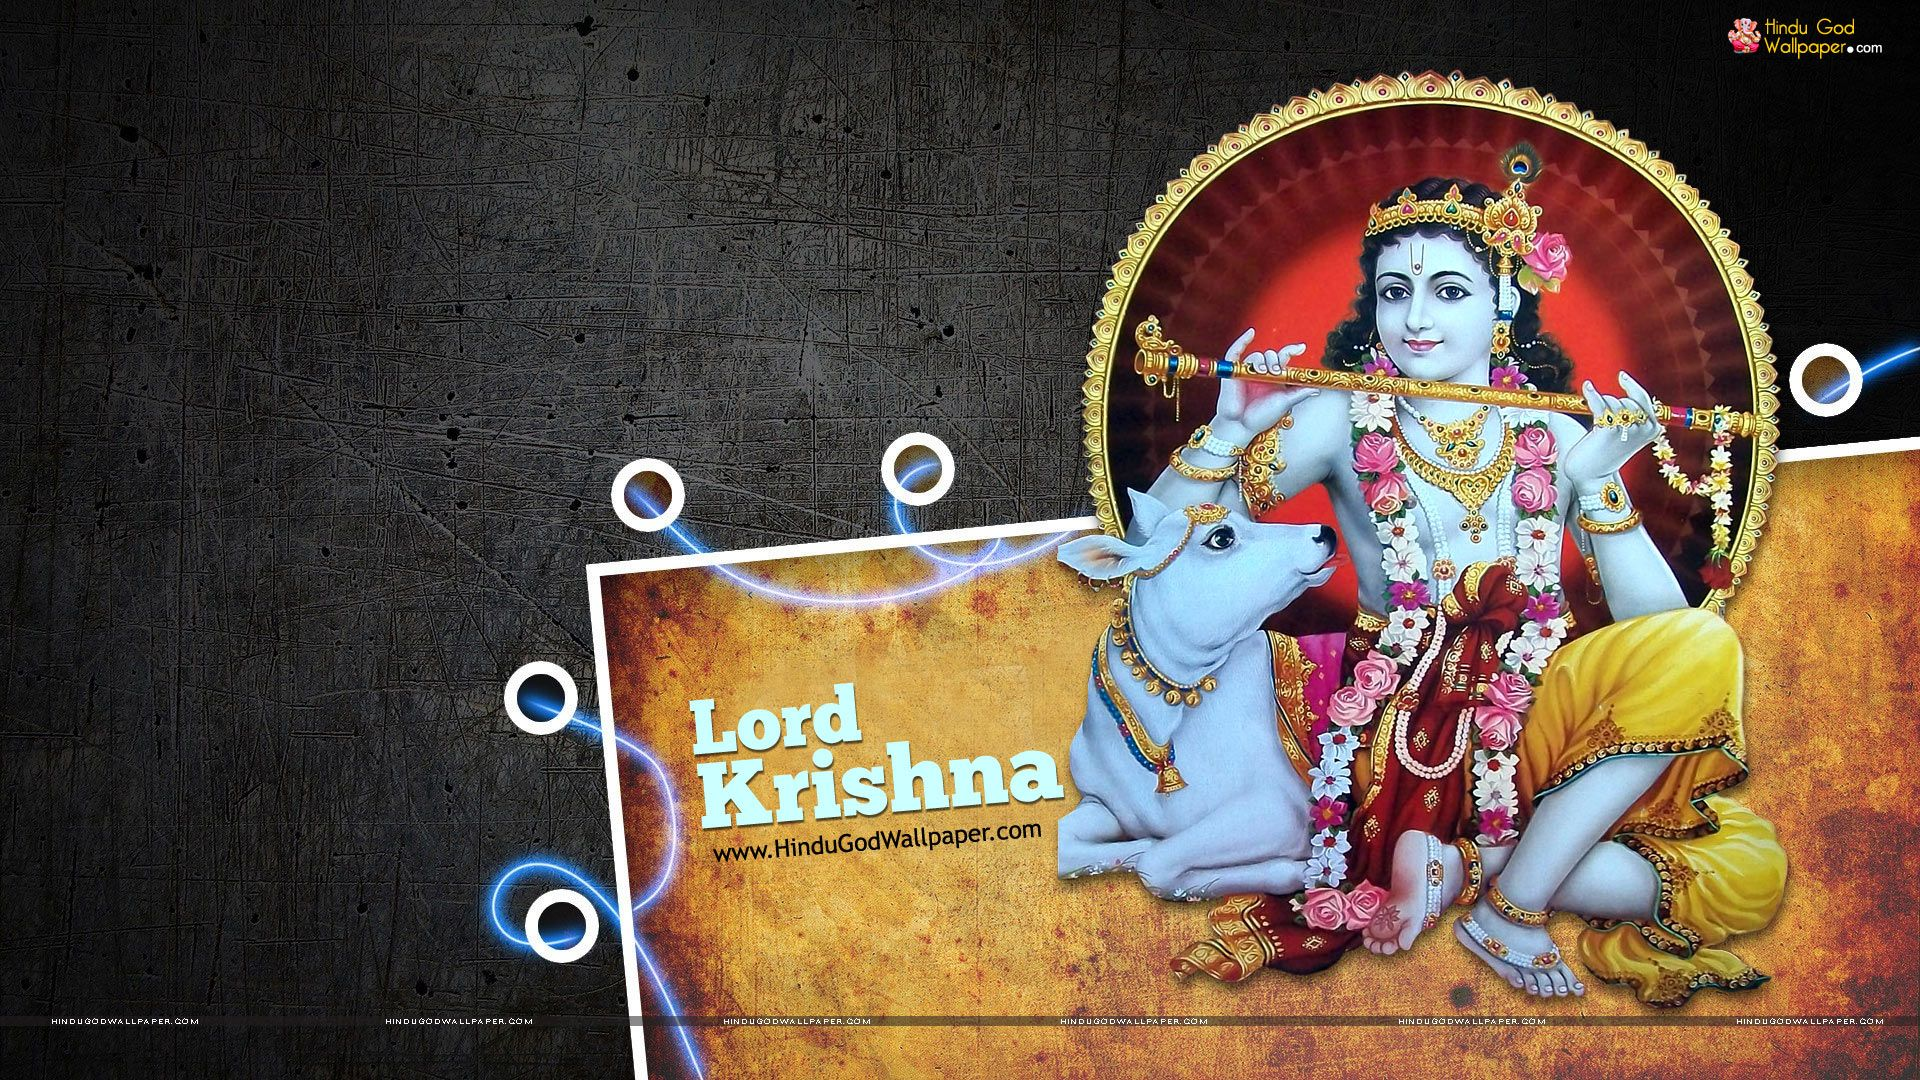 Hd wallpaper lord krishna - Lord Krishna Wallpaper 1080p Hd Full Size Download